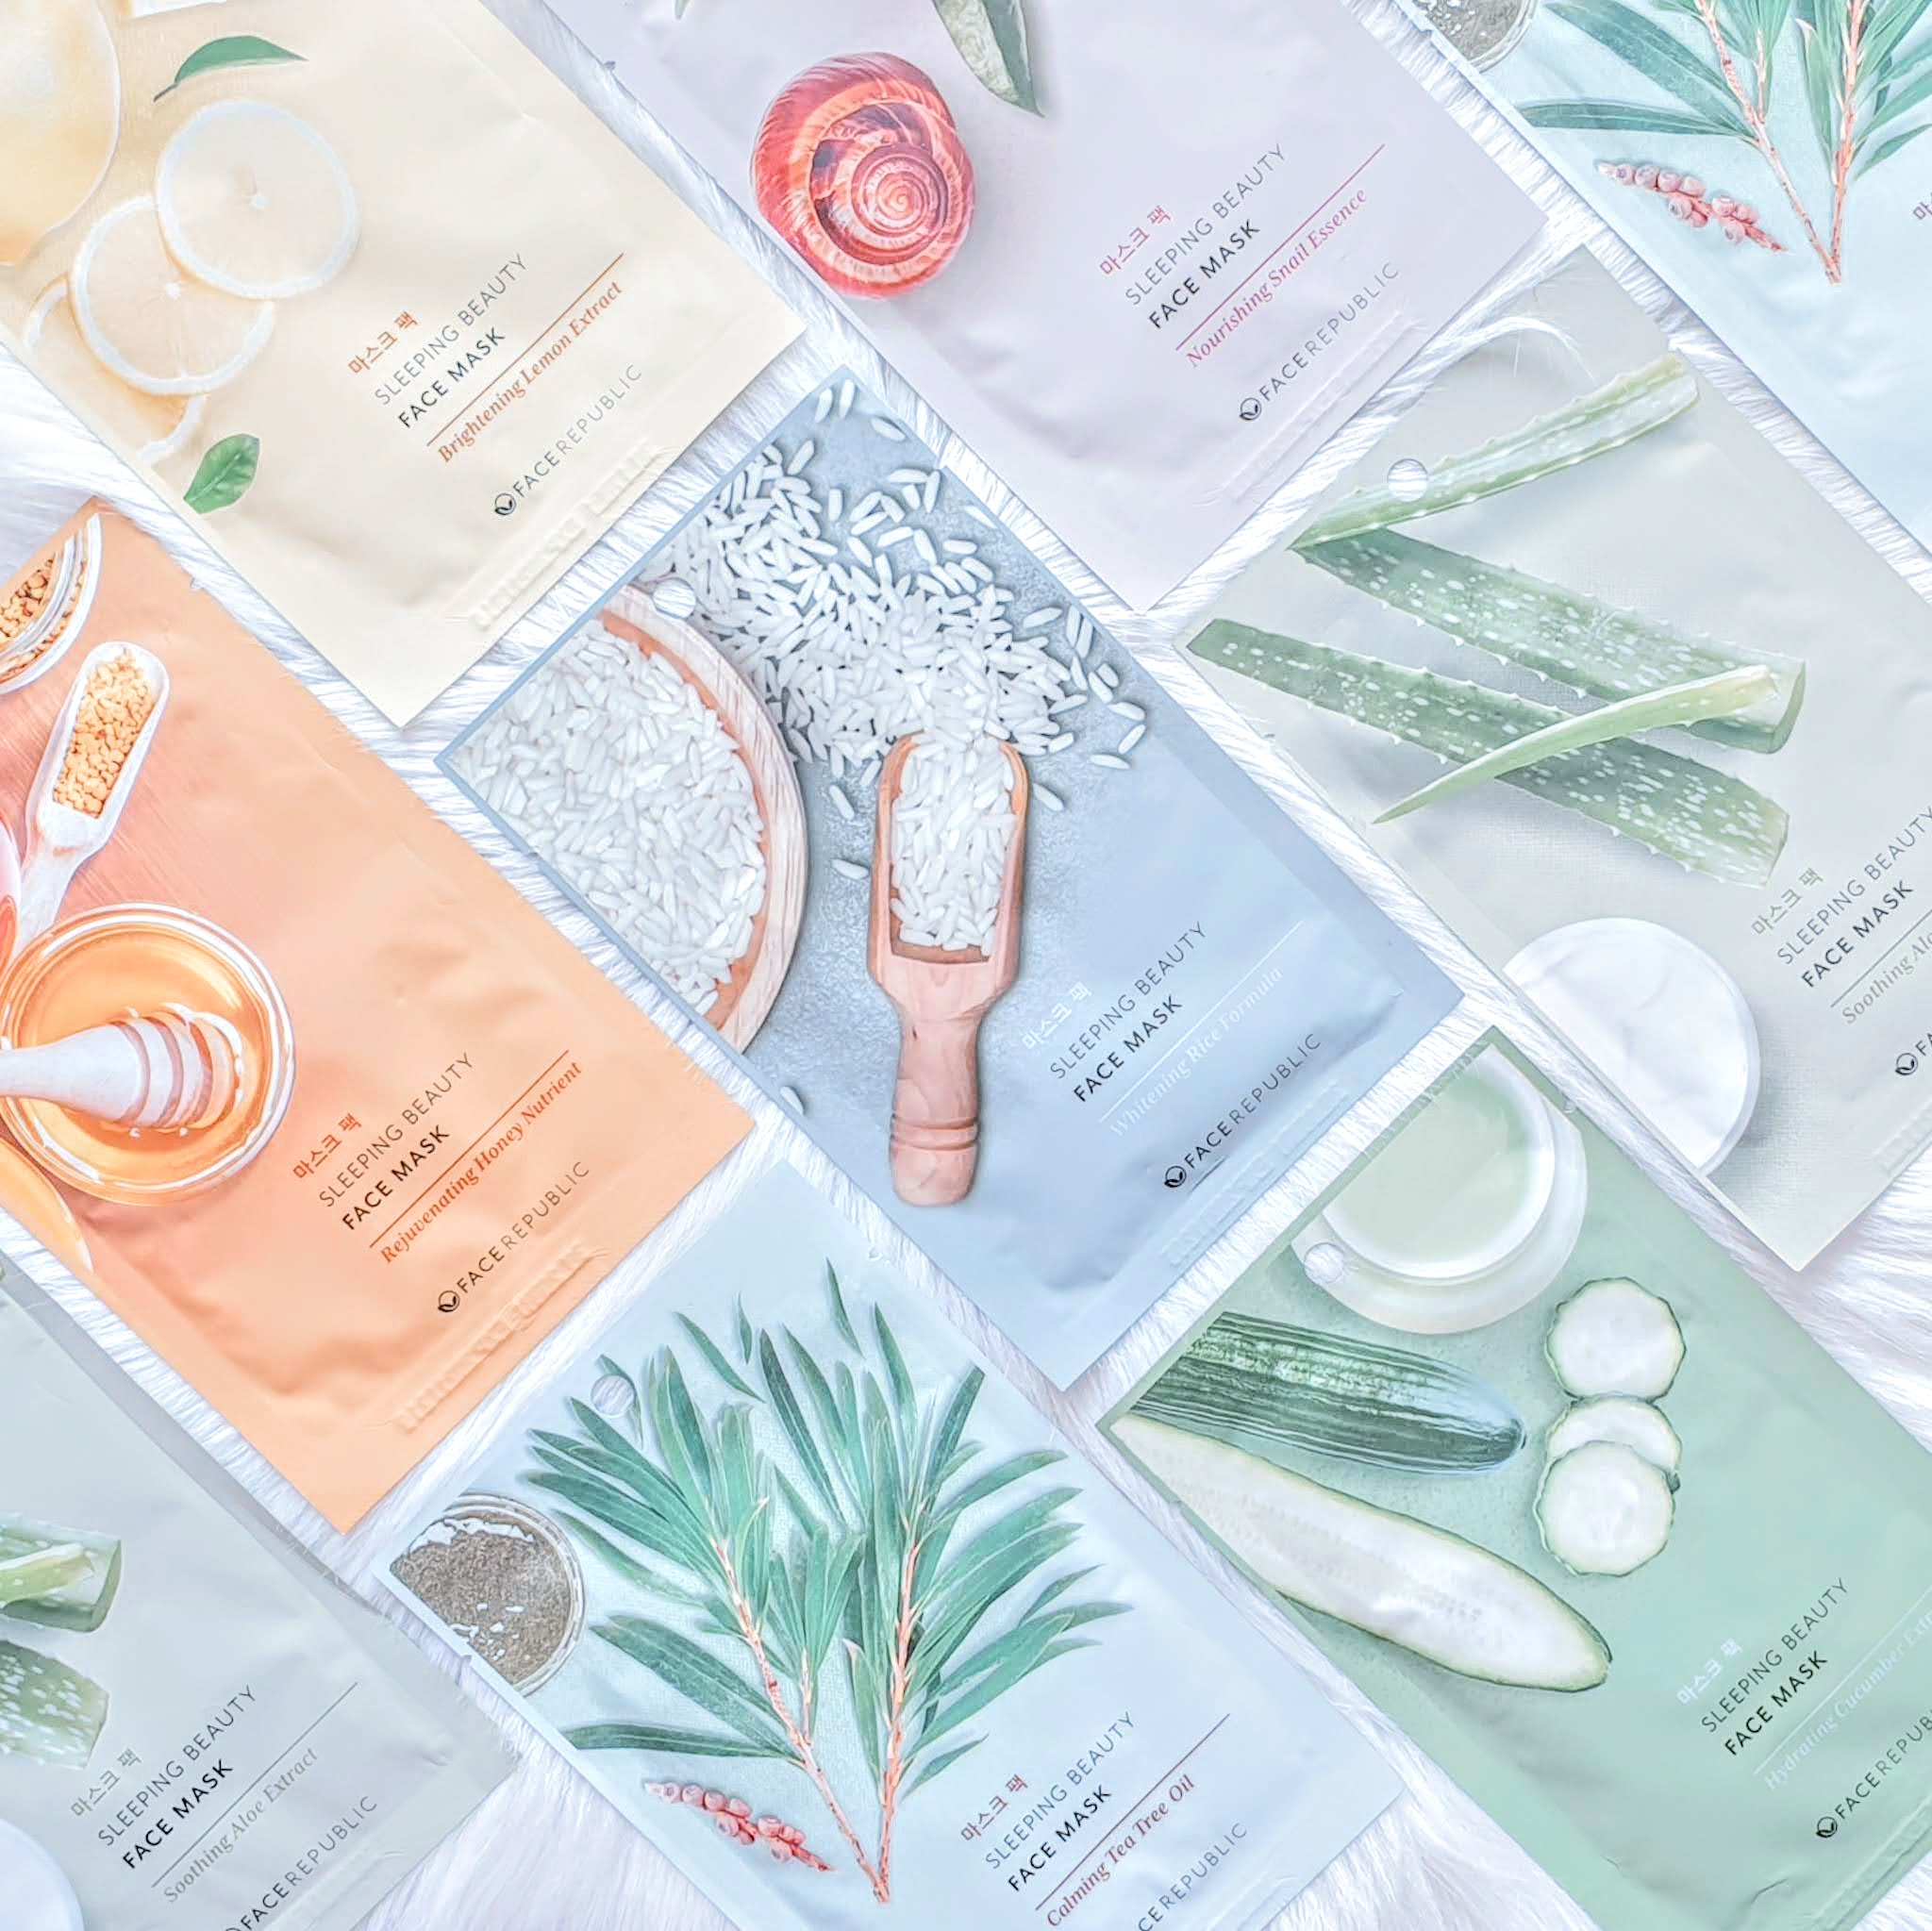 Face Republic 7 Days Sleeping Beauty Mask | Review